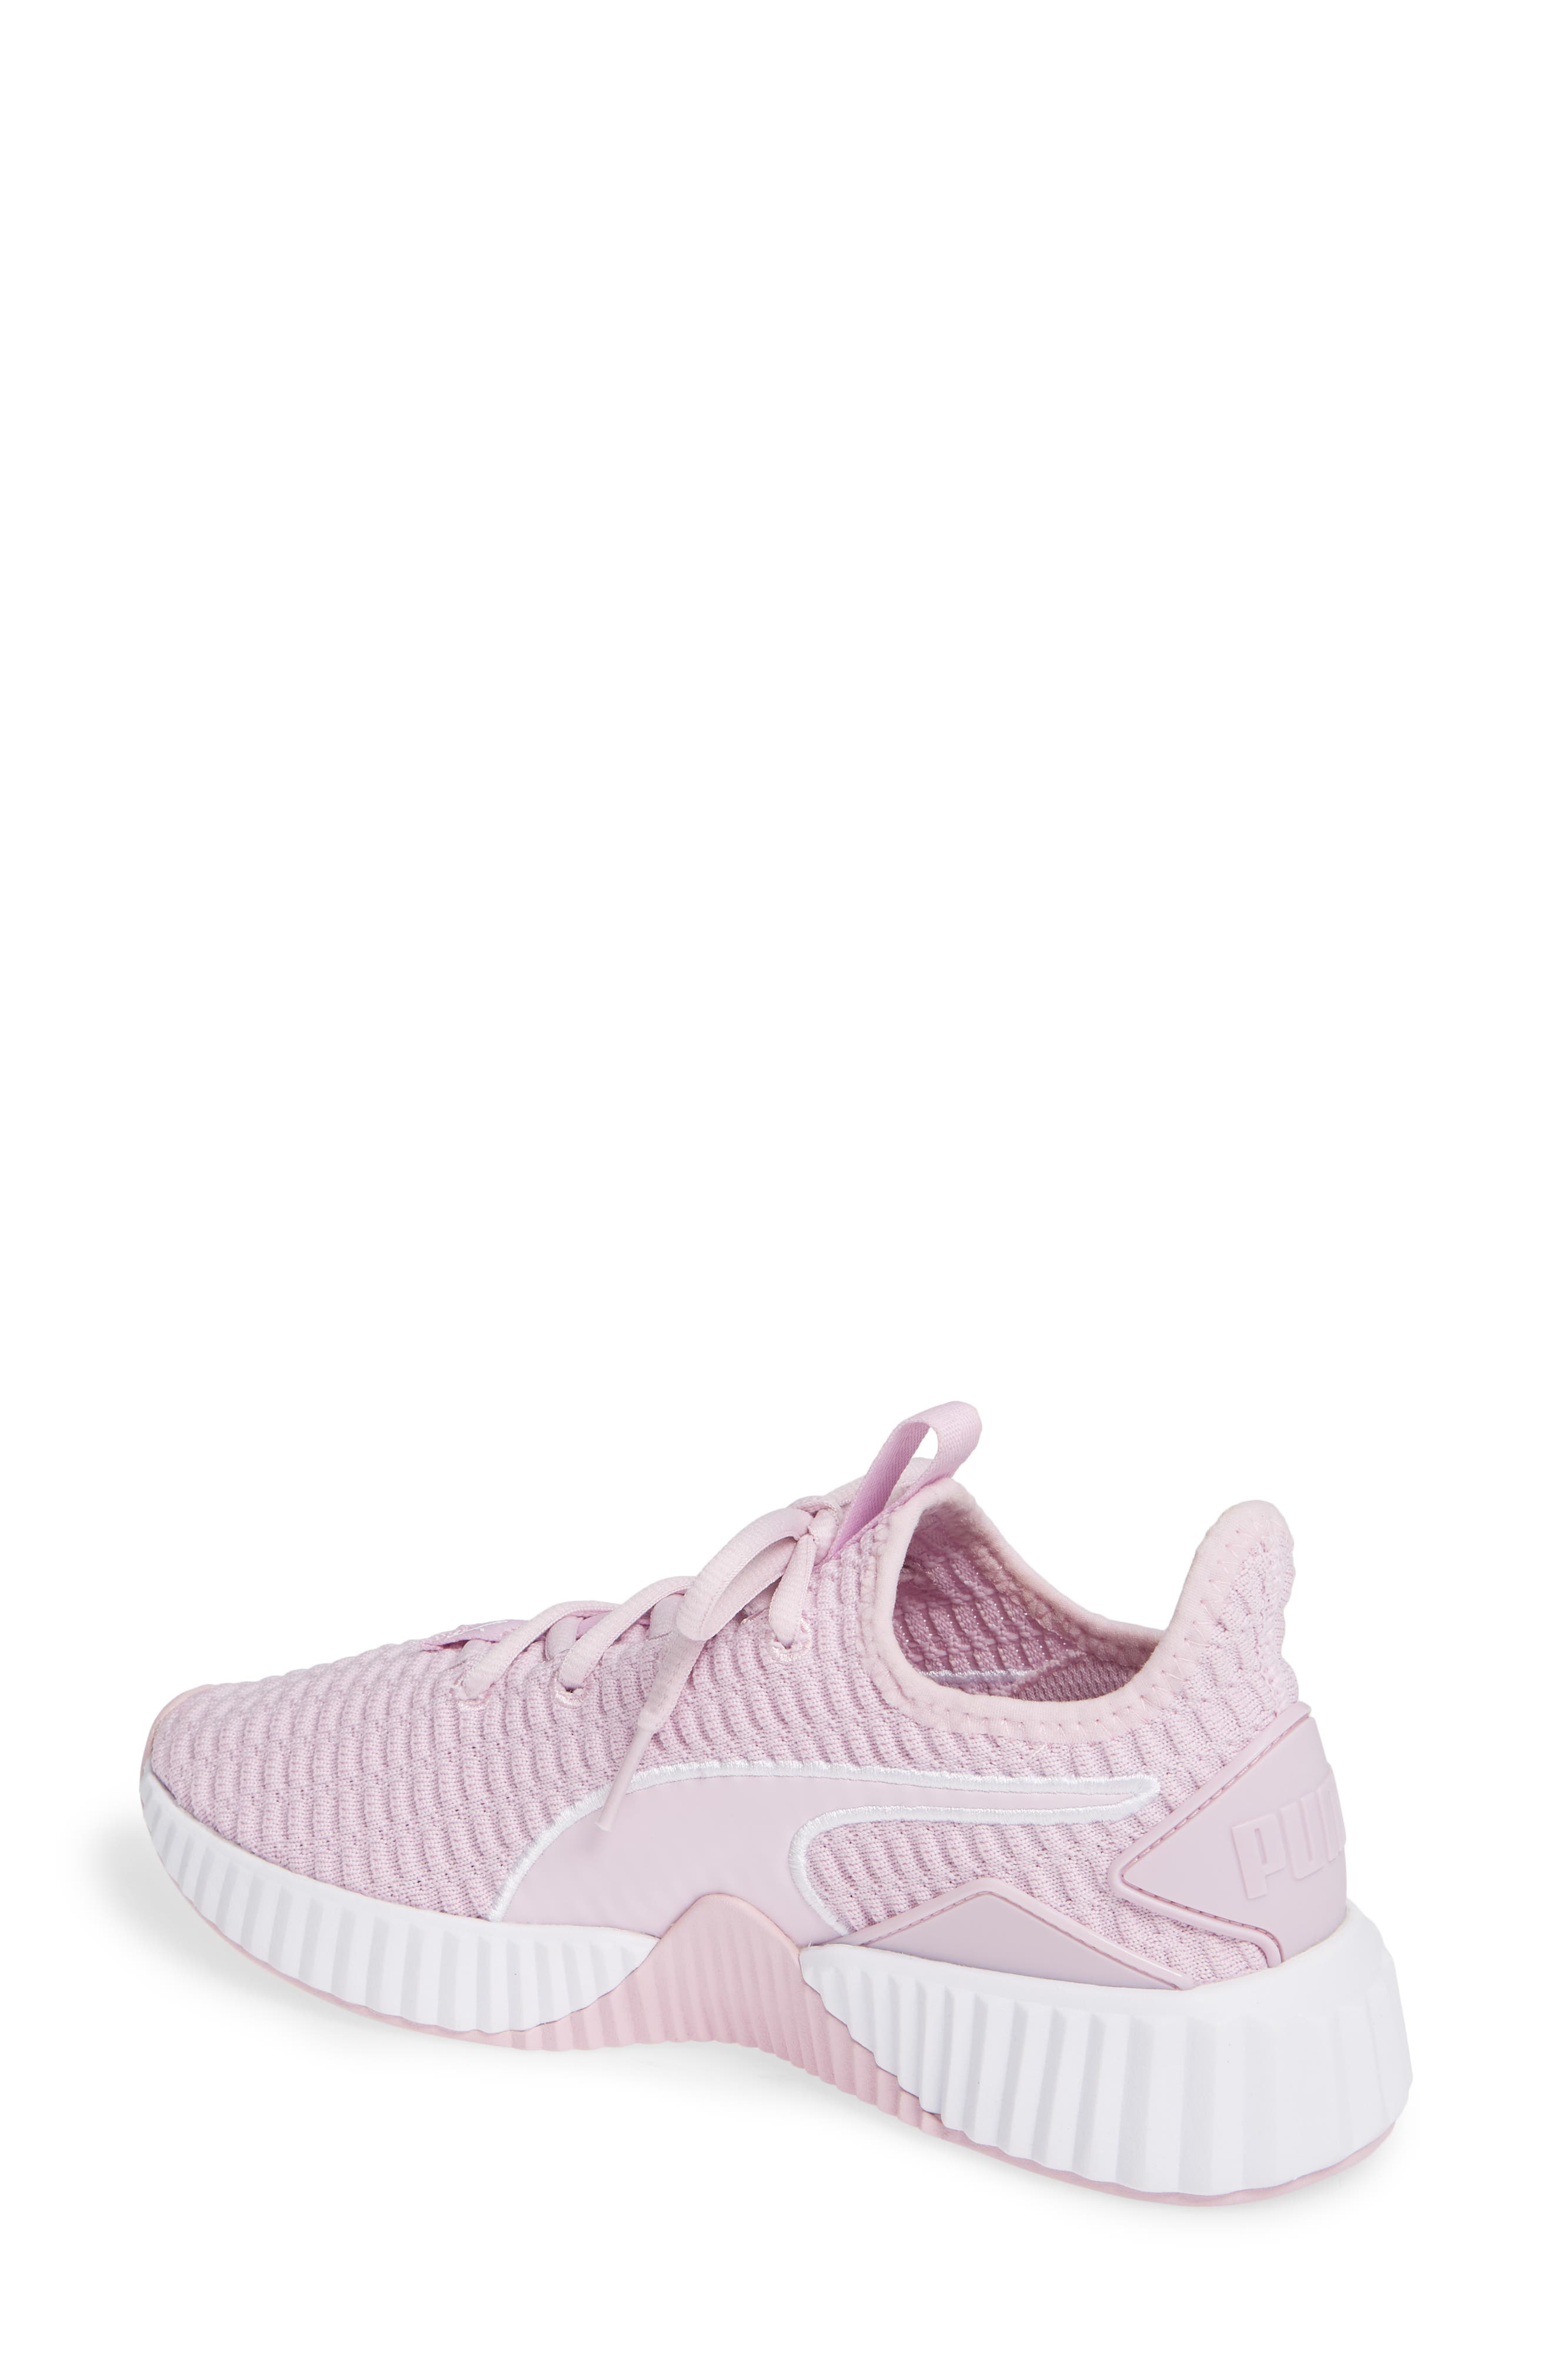 Defy Sneaker,                             Alternate thumbnail 2, color,                             WINSOME ORCHID/ PUMA WHITE